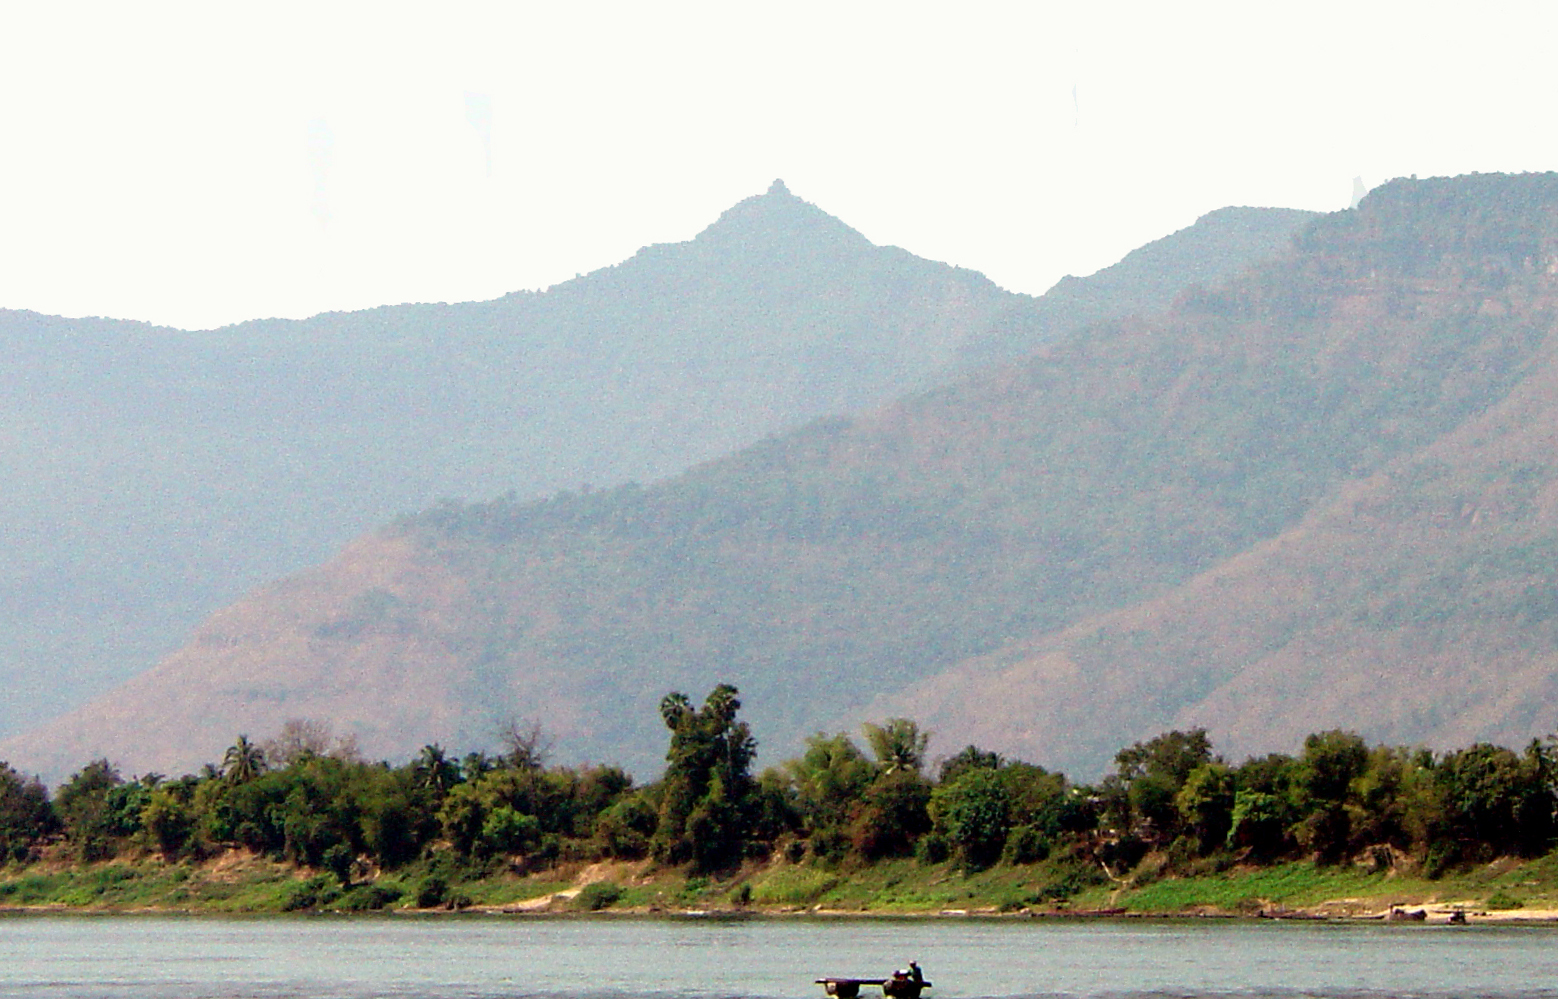 """Image 17. Crossing the Mekong river near Champasak, [Laos] one sees the mountain called """"Lingaparvata [almost certainly = Ling-kia-po-p'o]."""" Wat Phu [a Hindu temple] nestles at the base of this mountain, which has been a sacred site from at least the 5th century A.D., being associated with the early kings of Chela. Photo by Michael Gunther."""